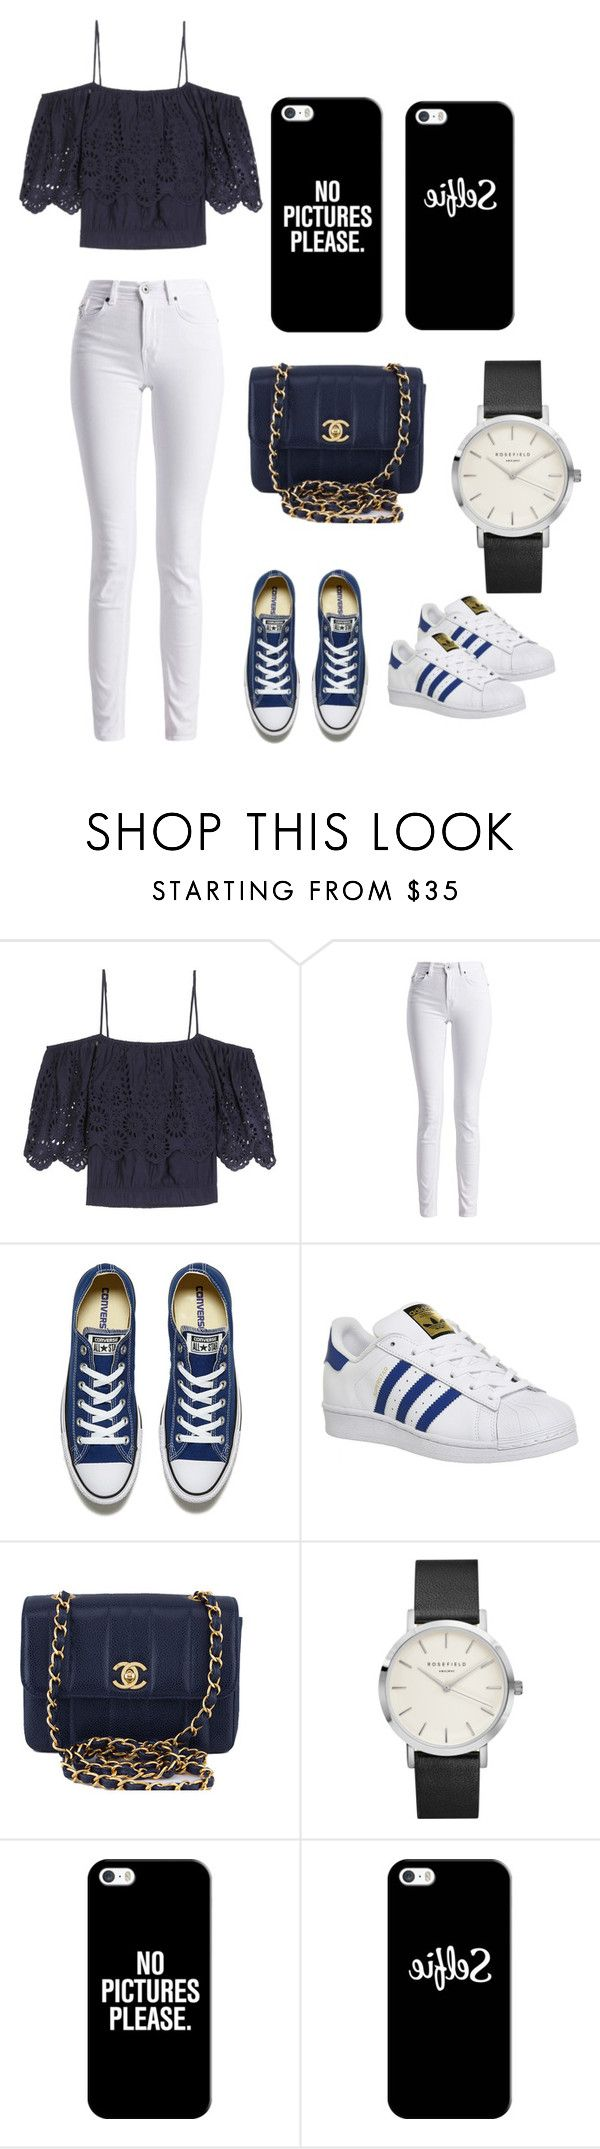 """""""A night in the city"""" by mimixoxo-66 ❤ liked on Polyvore featuring Ganni, Barbour International, Converse, adidas, Chanel and Casetify"""